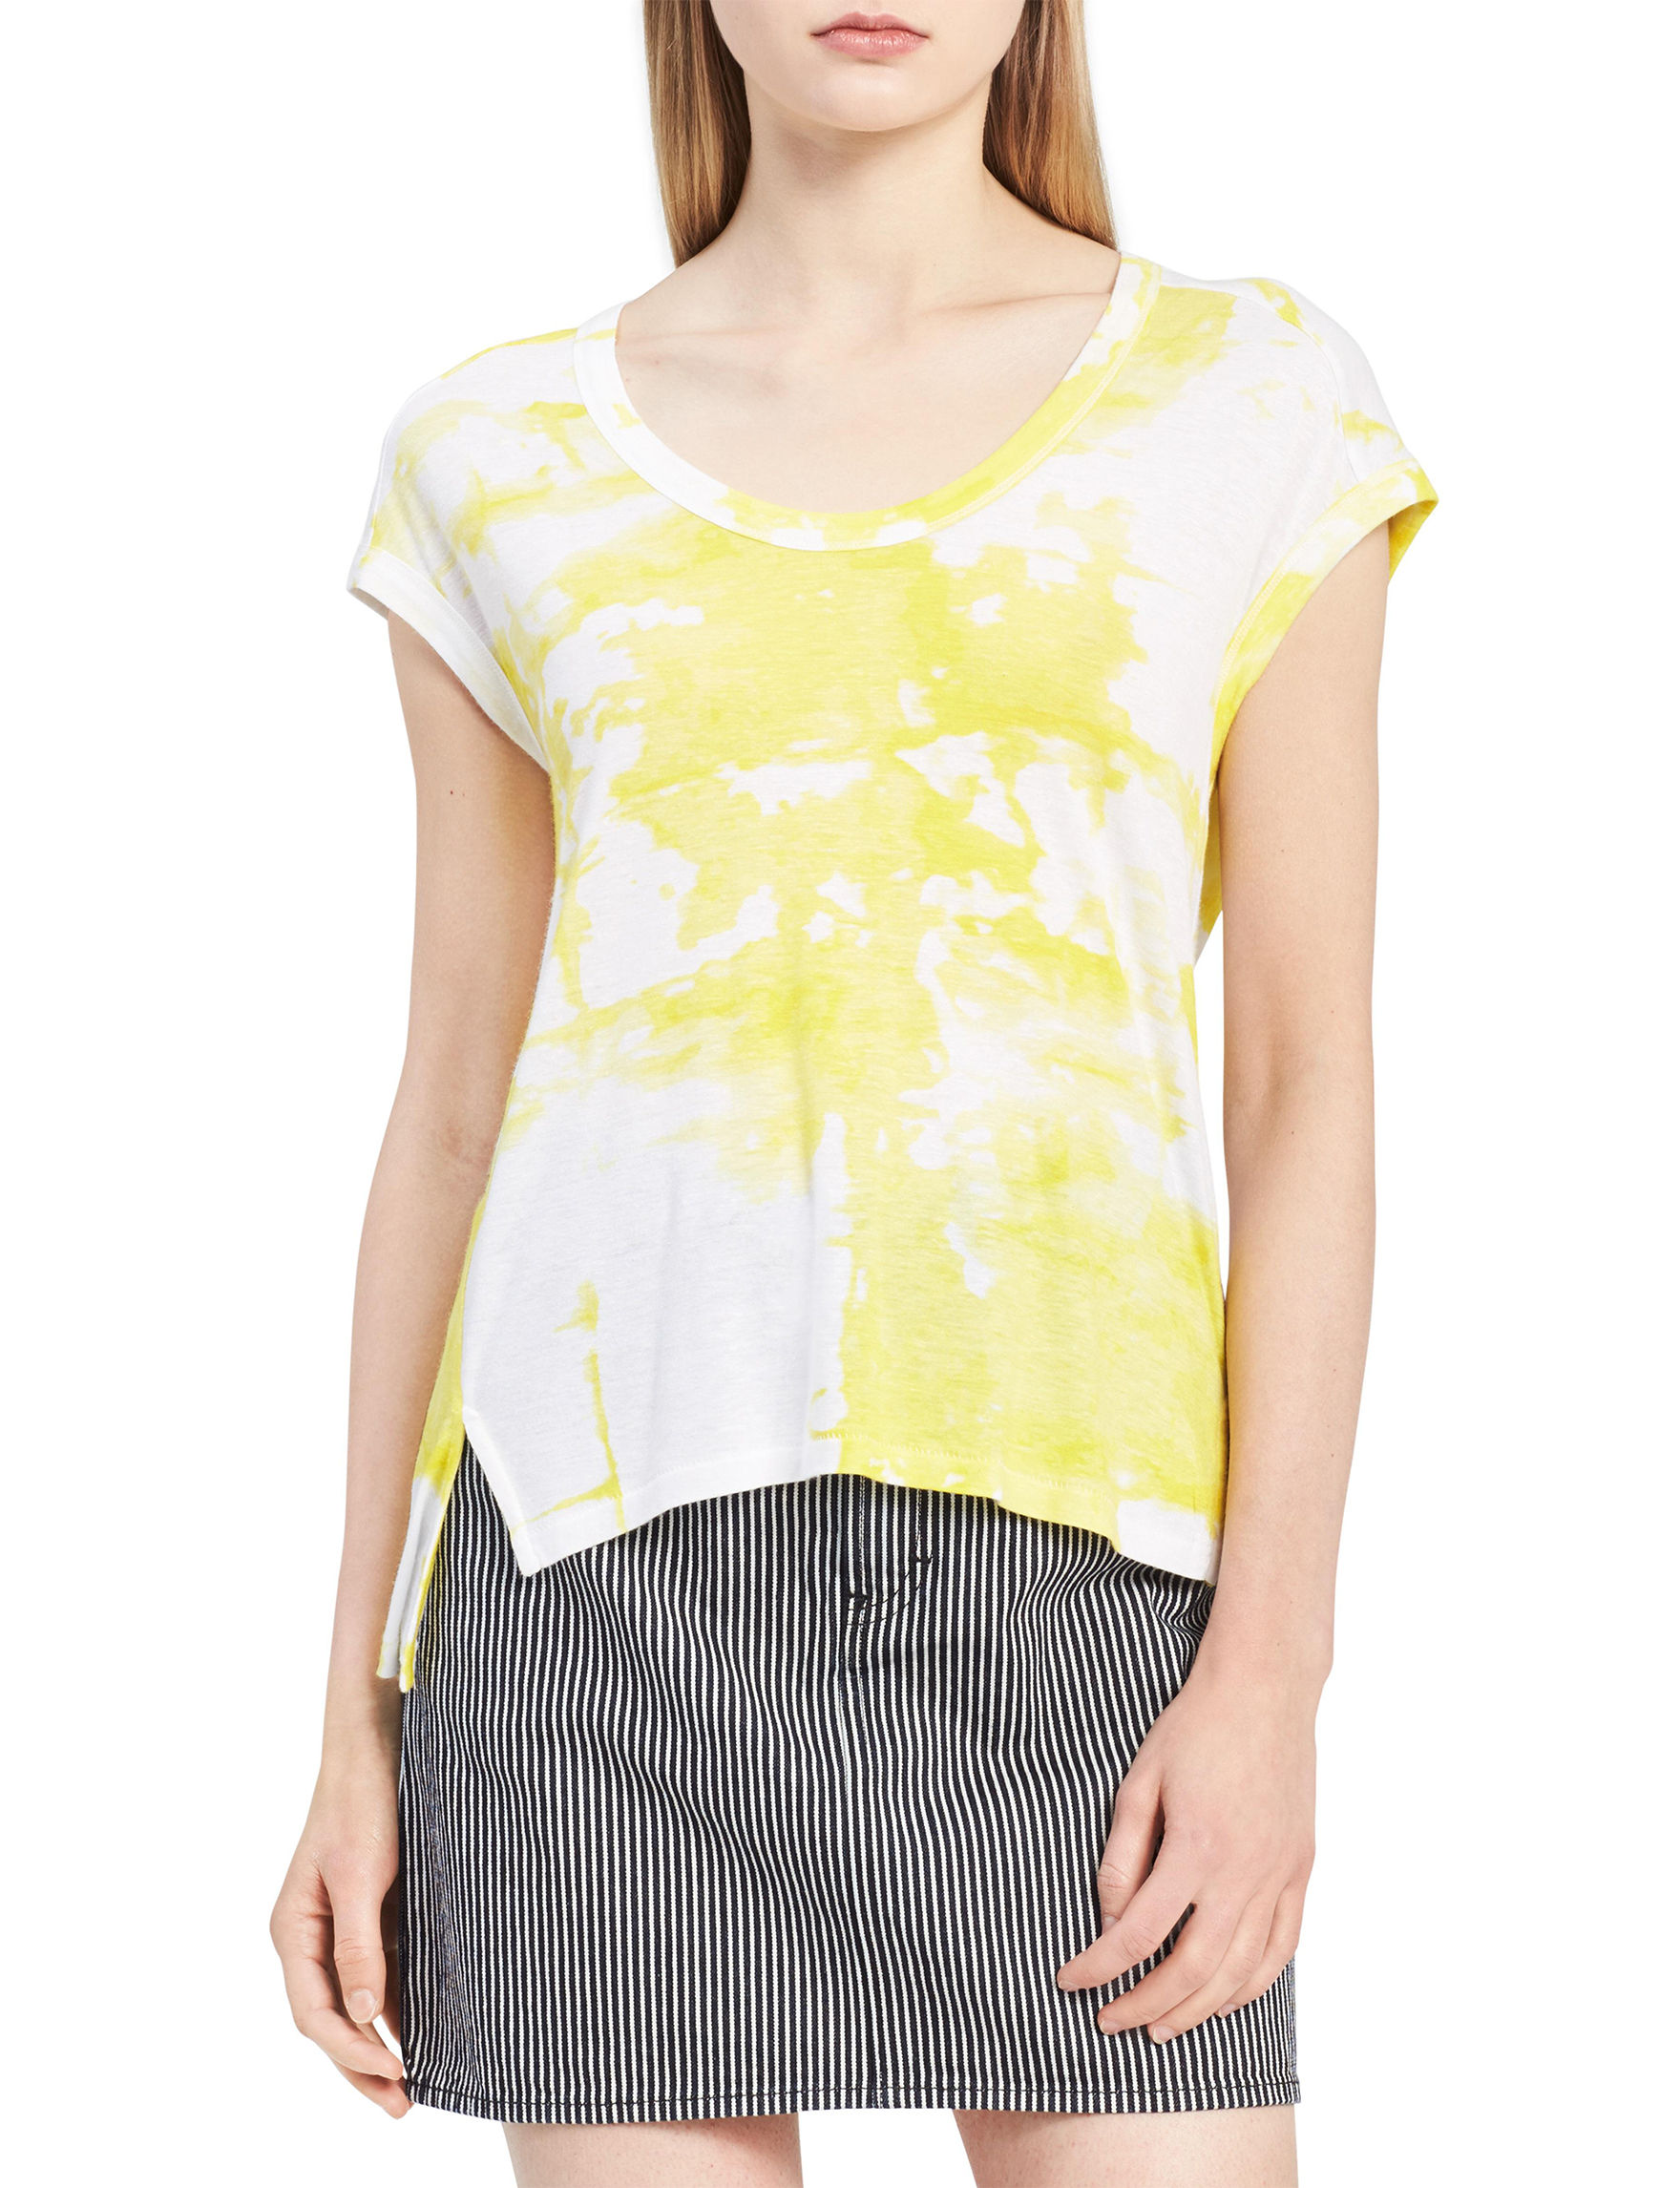 Calvin Klein Jeans White / Yellow Shirts & Blouses Tees & Tanks